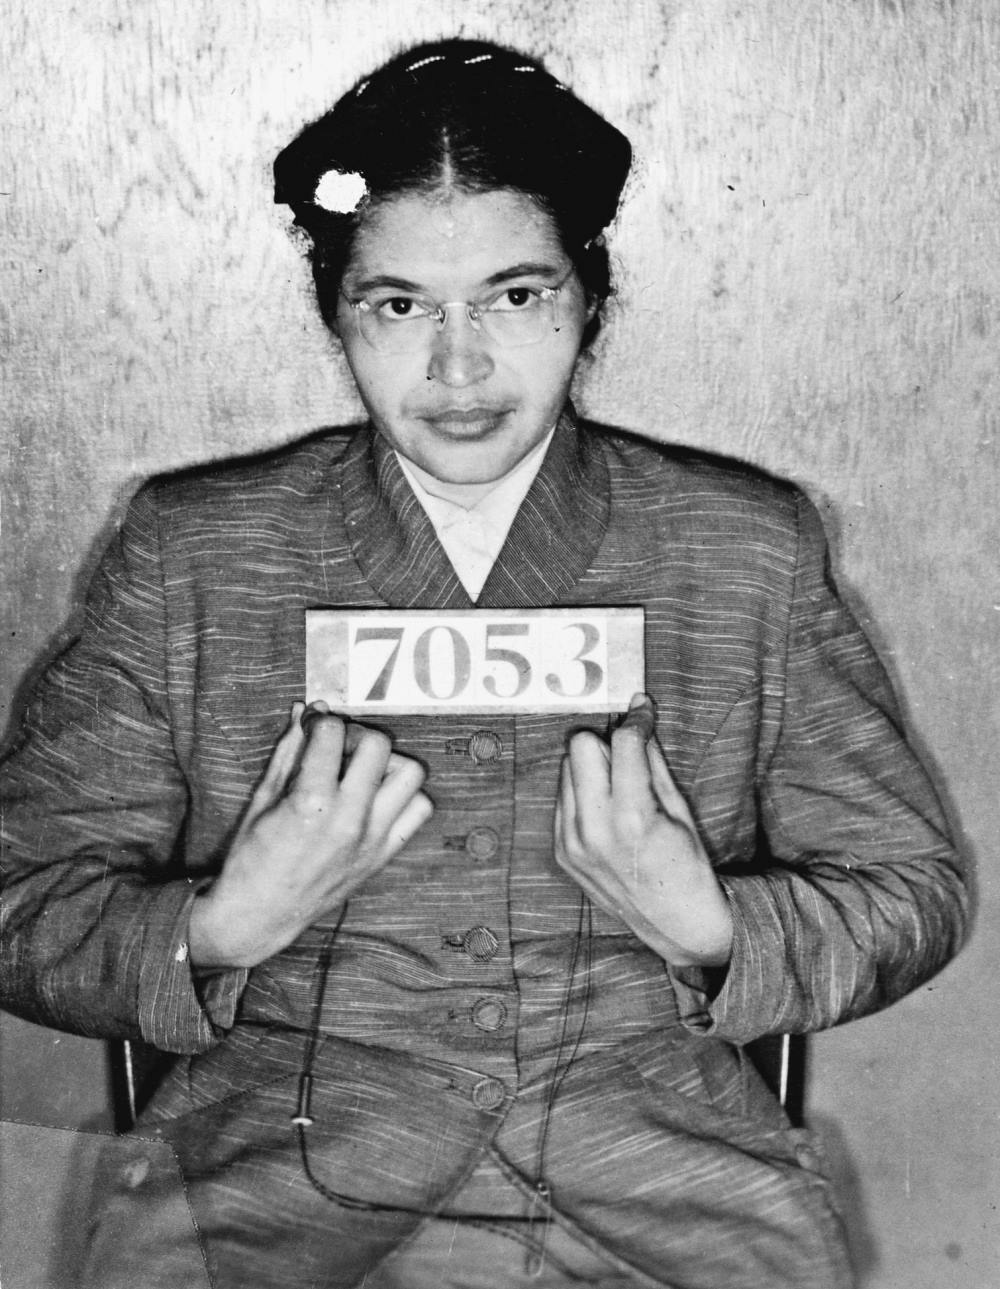 rosa parks mugshot december 1955 The Resilience Of Rosa Parks Mug Shot